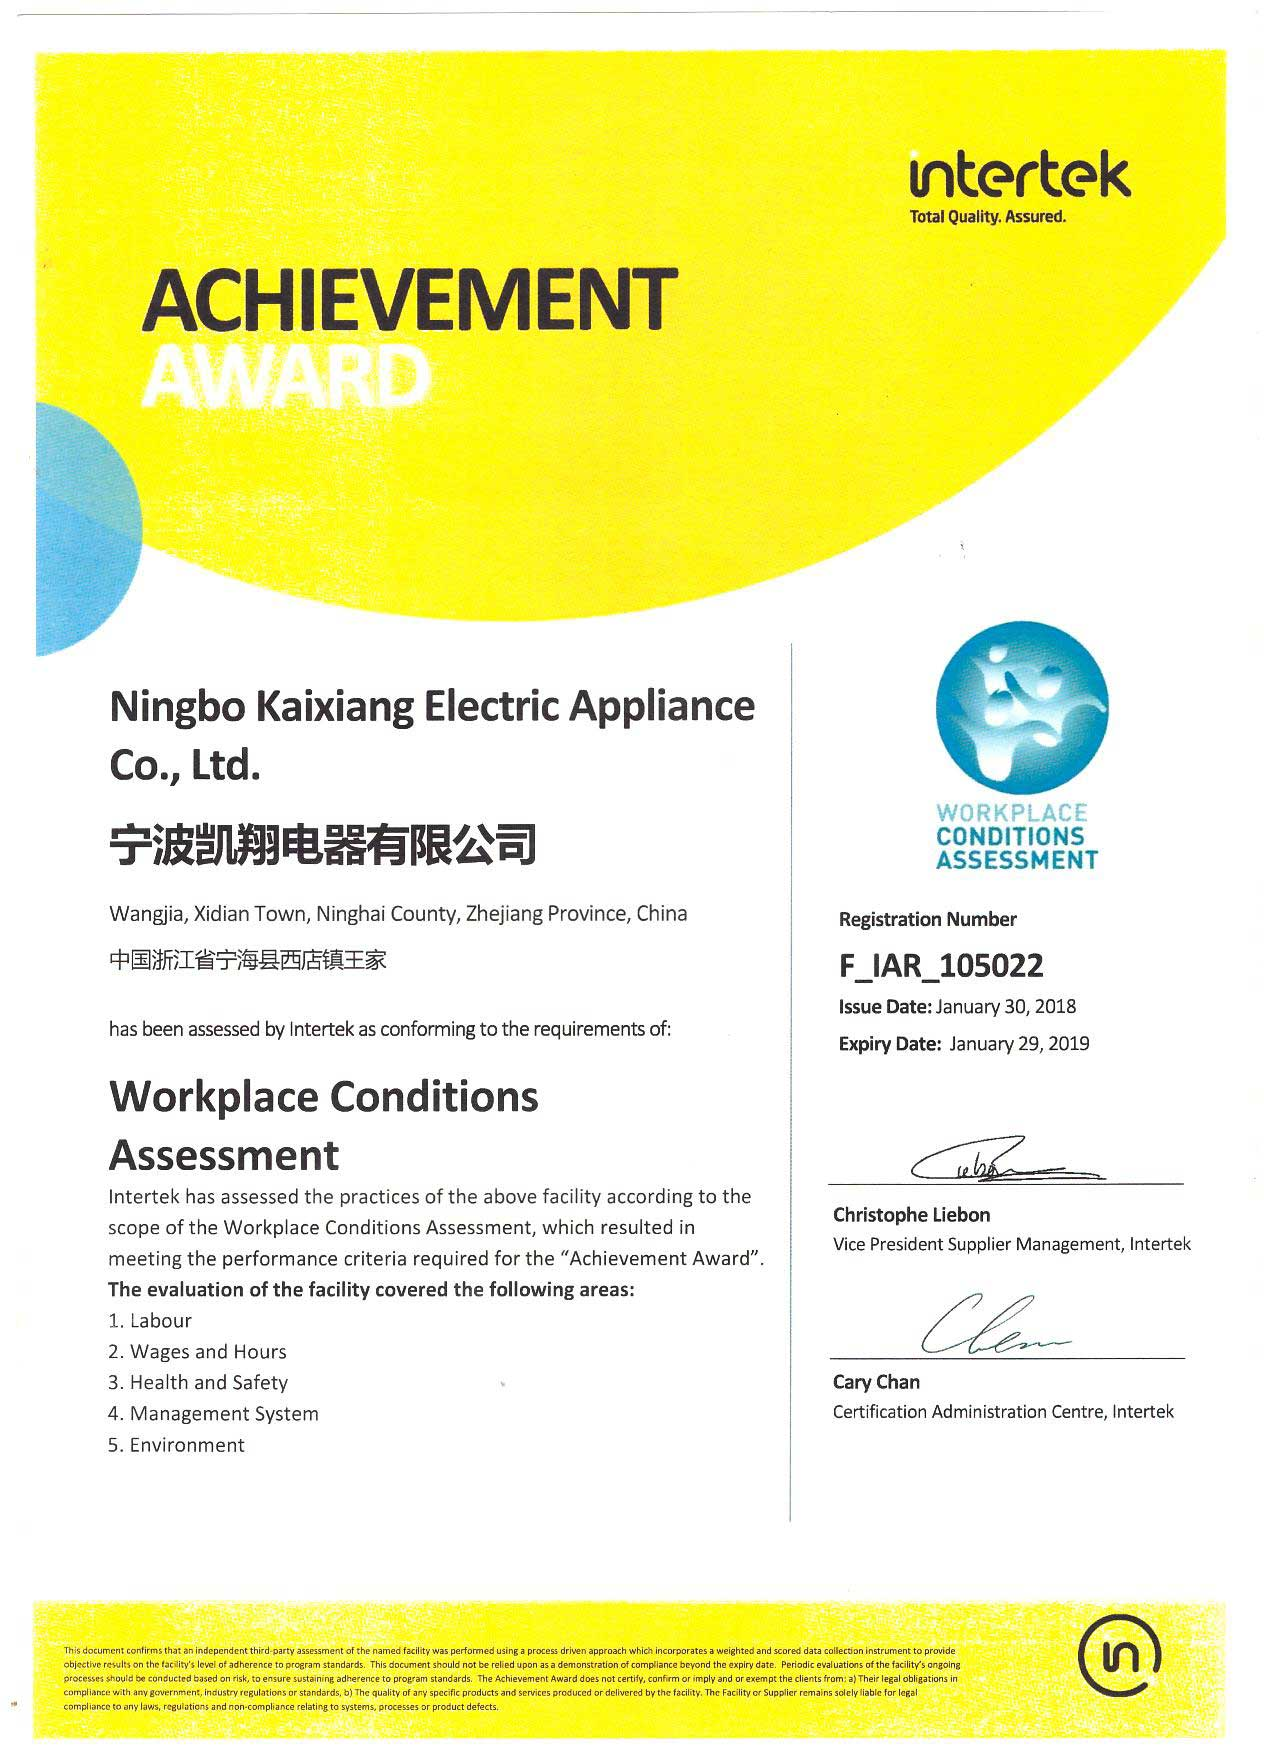 Workplace Conditions Assessment Report